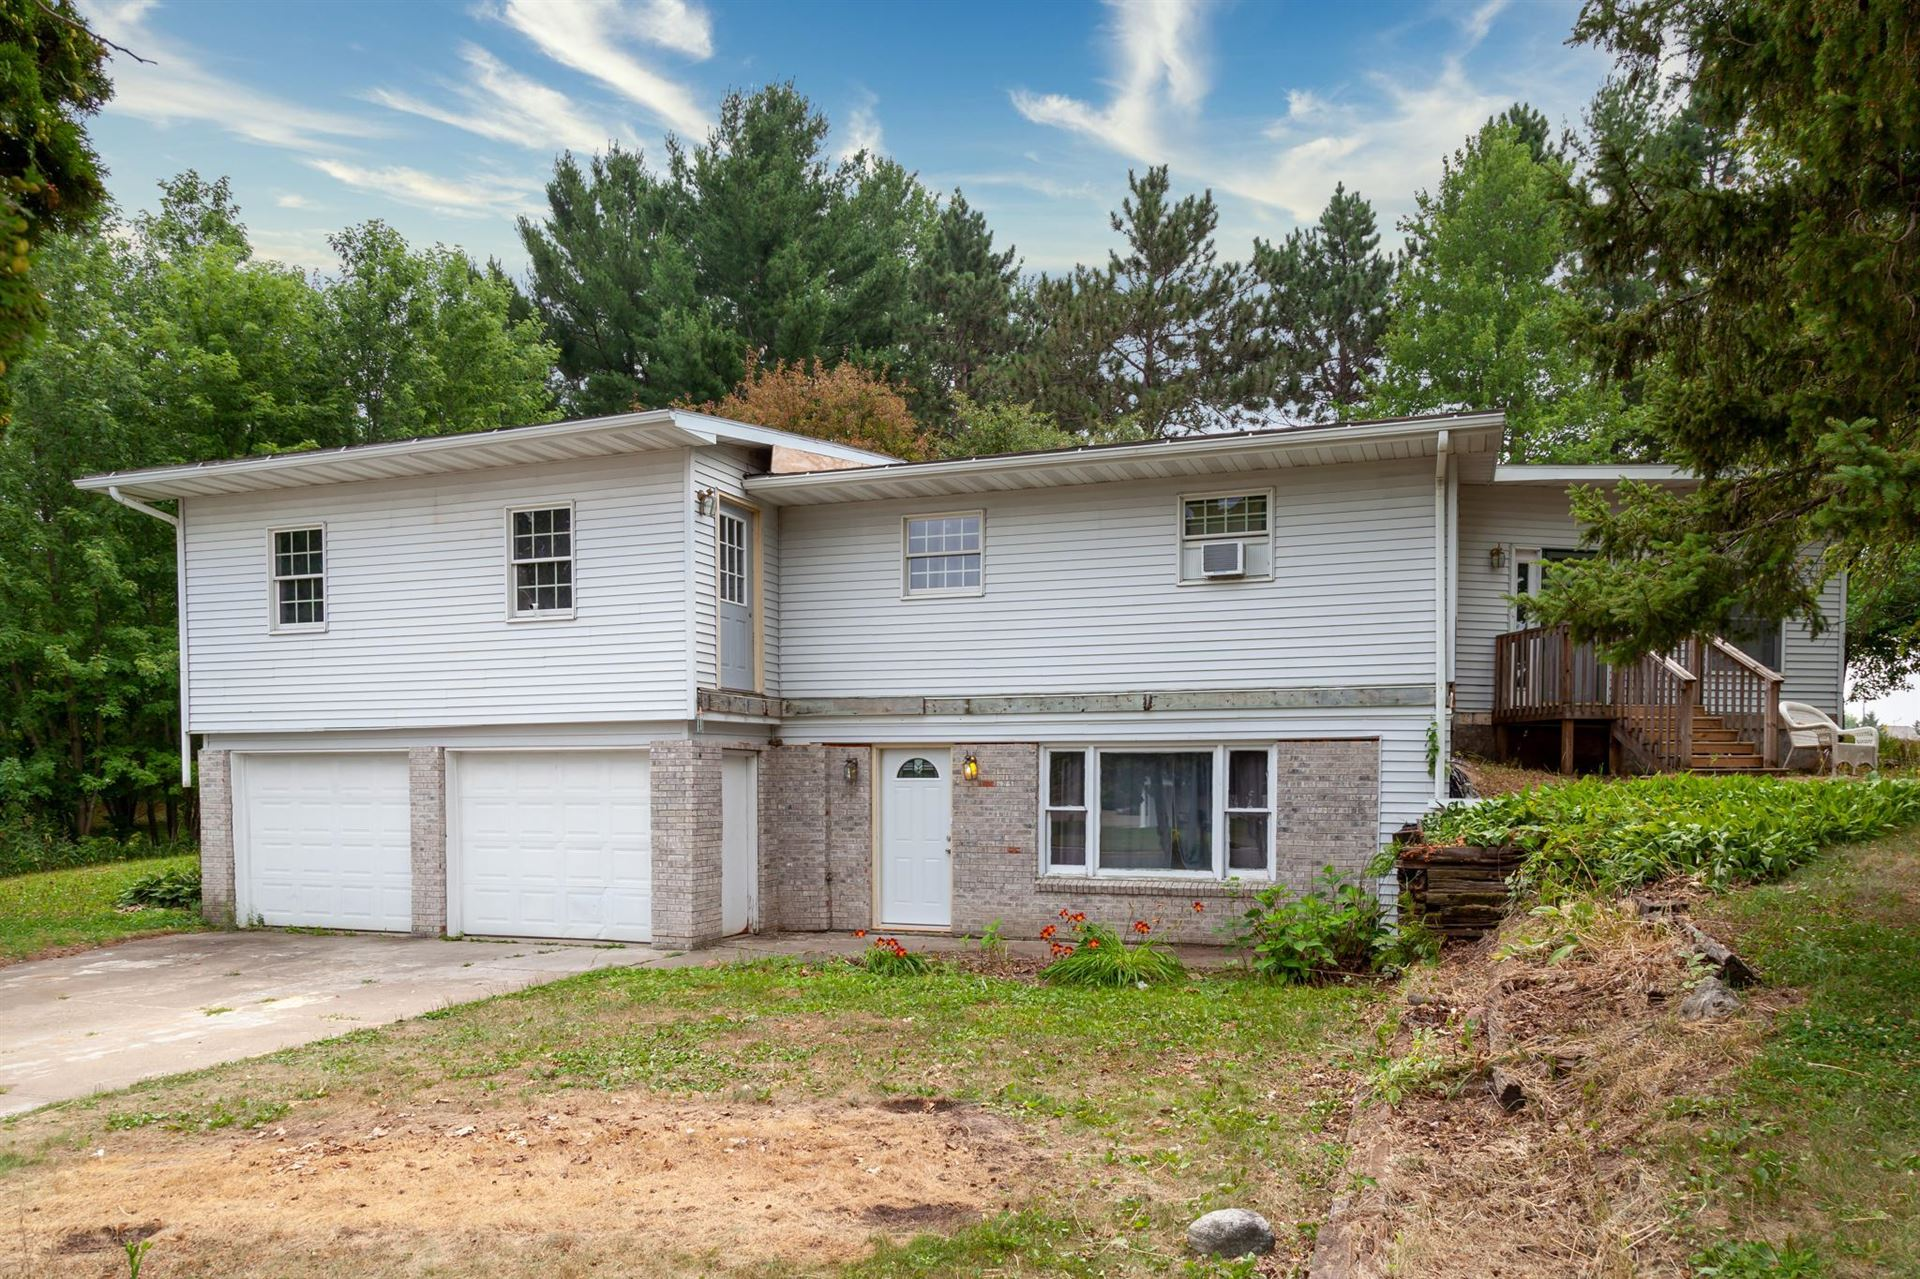 Photo of 801 Melrose Avenue, Amery, WI 54001 (MLS # 6072803)